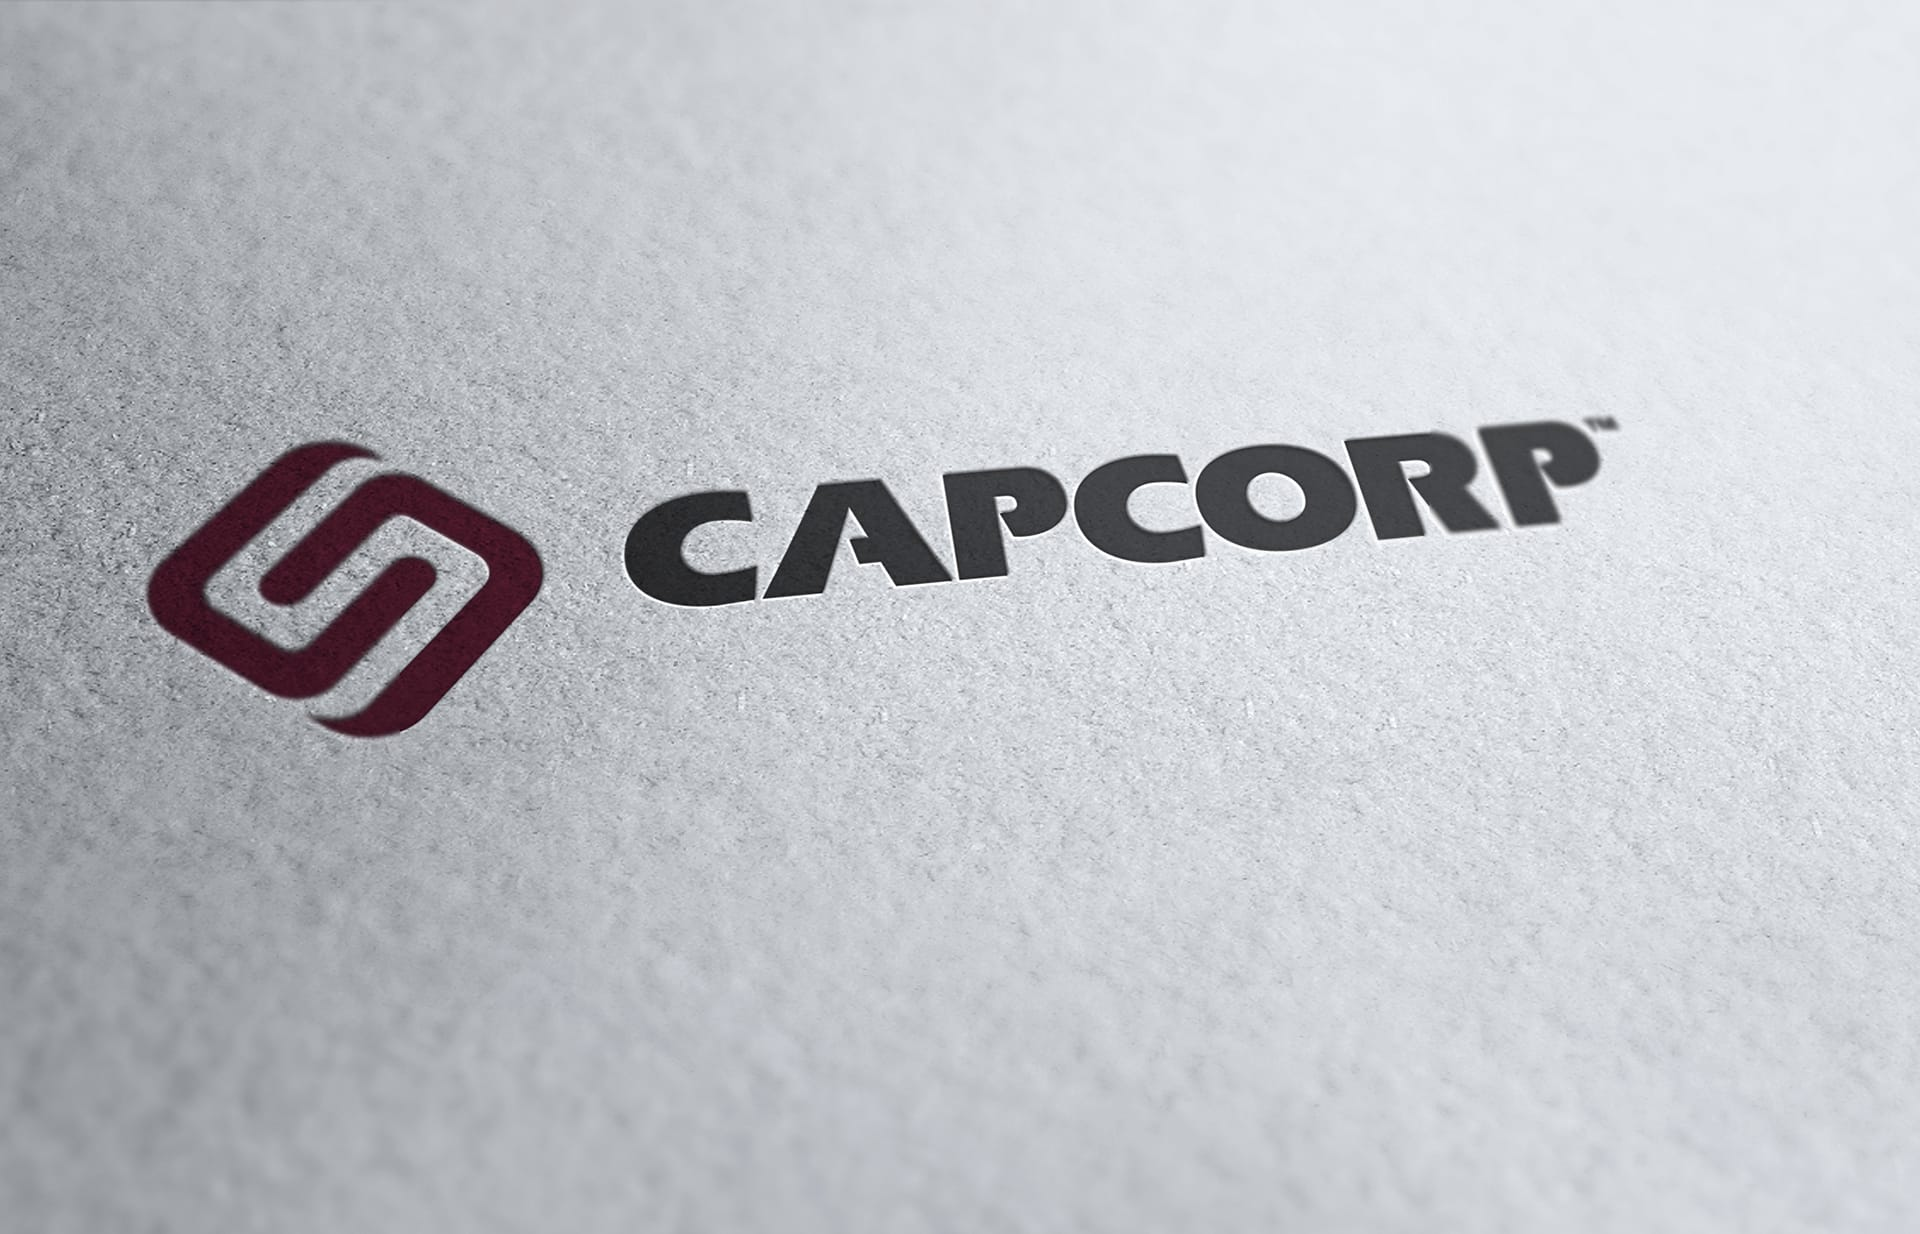 CAPCORP - Logo Letterpress